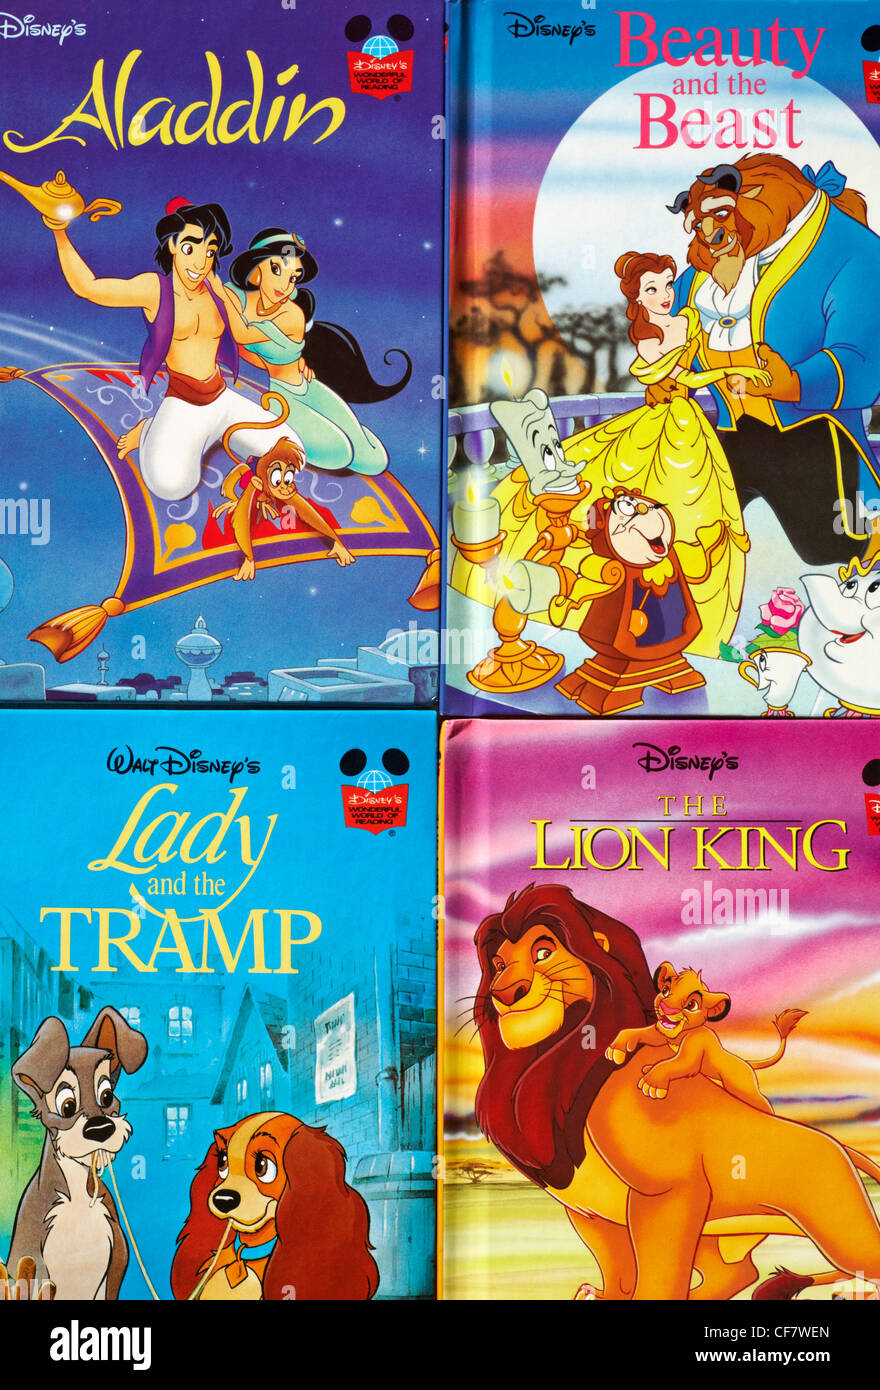 four Walt Disney's books - Aladdin, Beauty and the beast, Lady and the Tramp and the Lion King - Stock Image